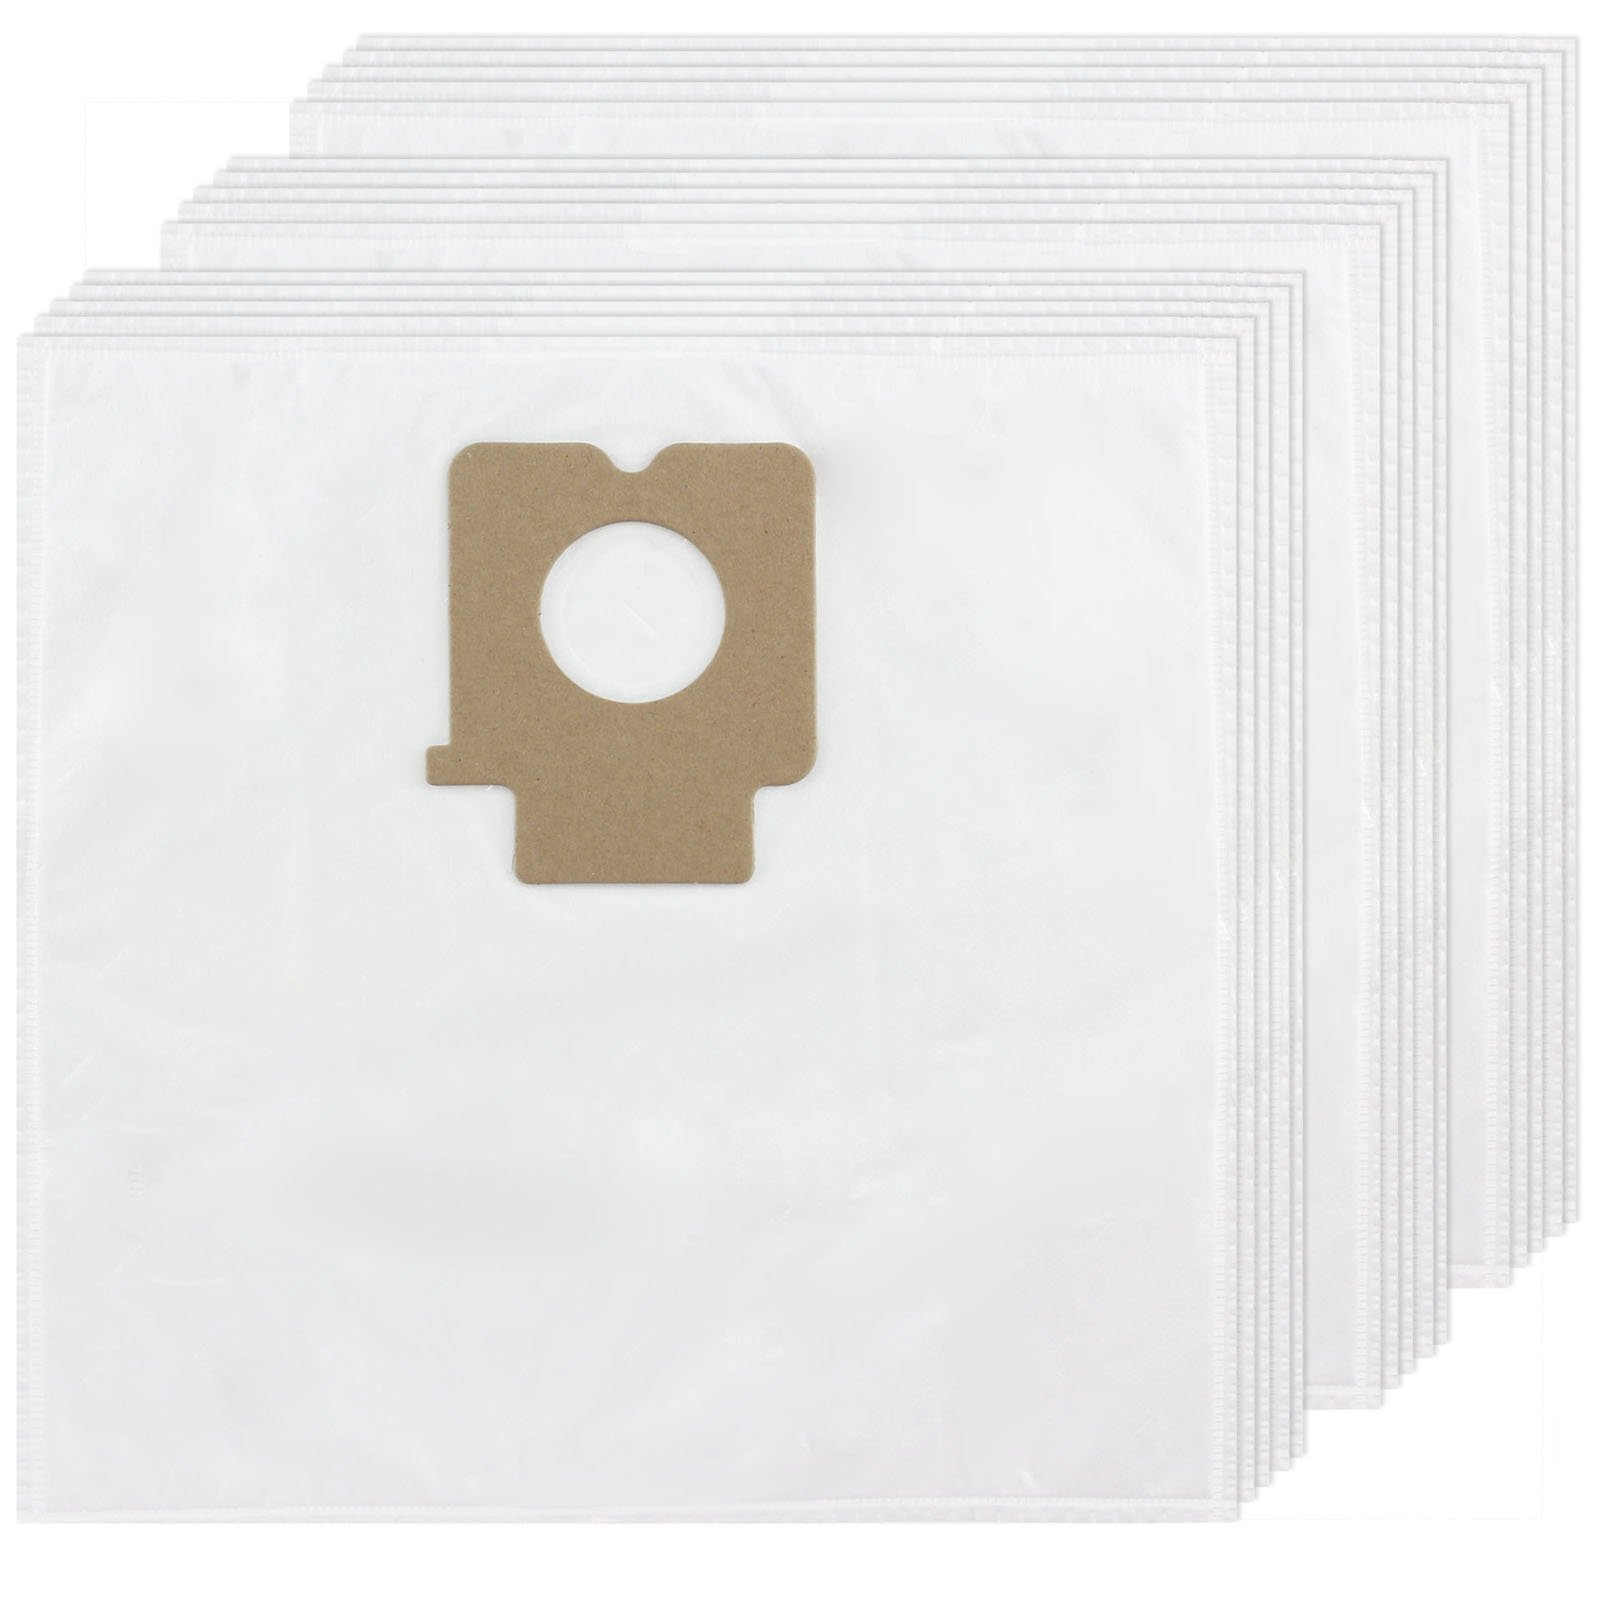 Spares2go Microfibre Cloth Bags For Panasonic Vacuum Cleaner (Pack of 15)